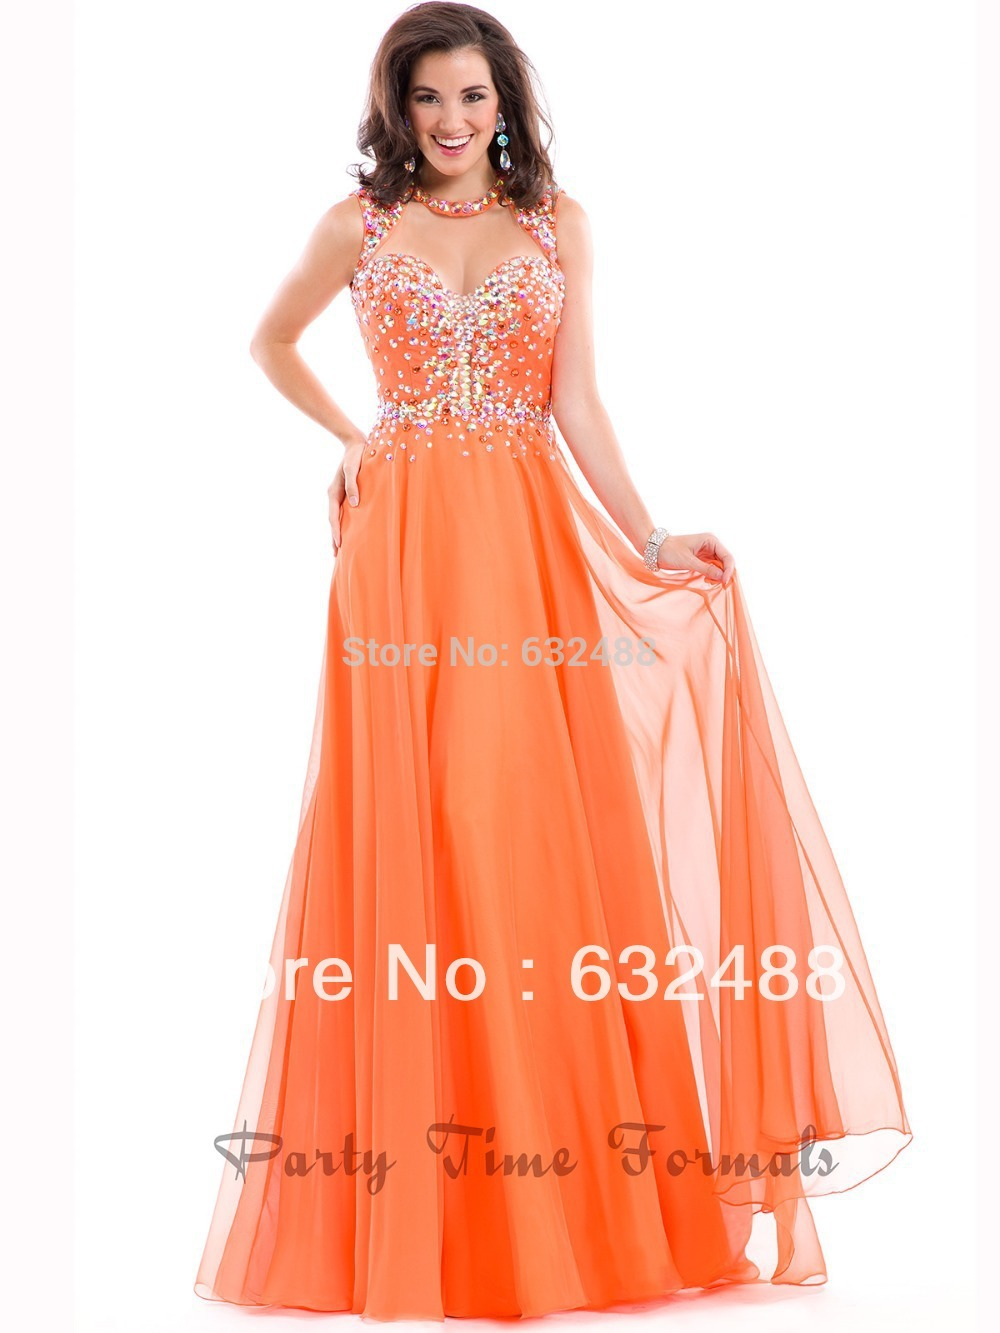 Prom Dress Stores In Toronto Yahoo 70